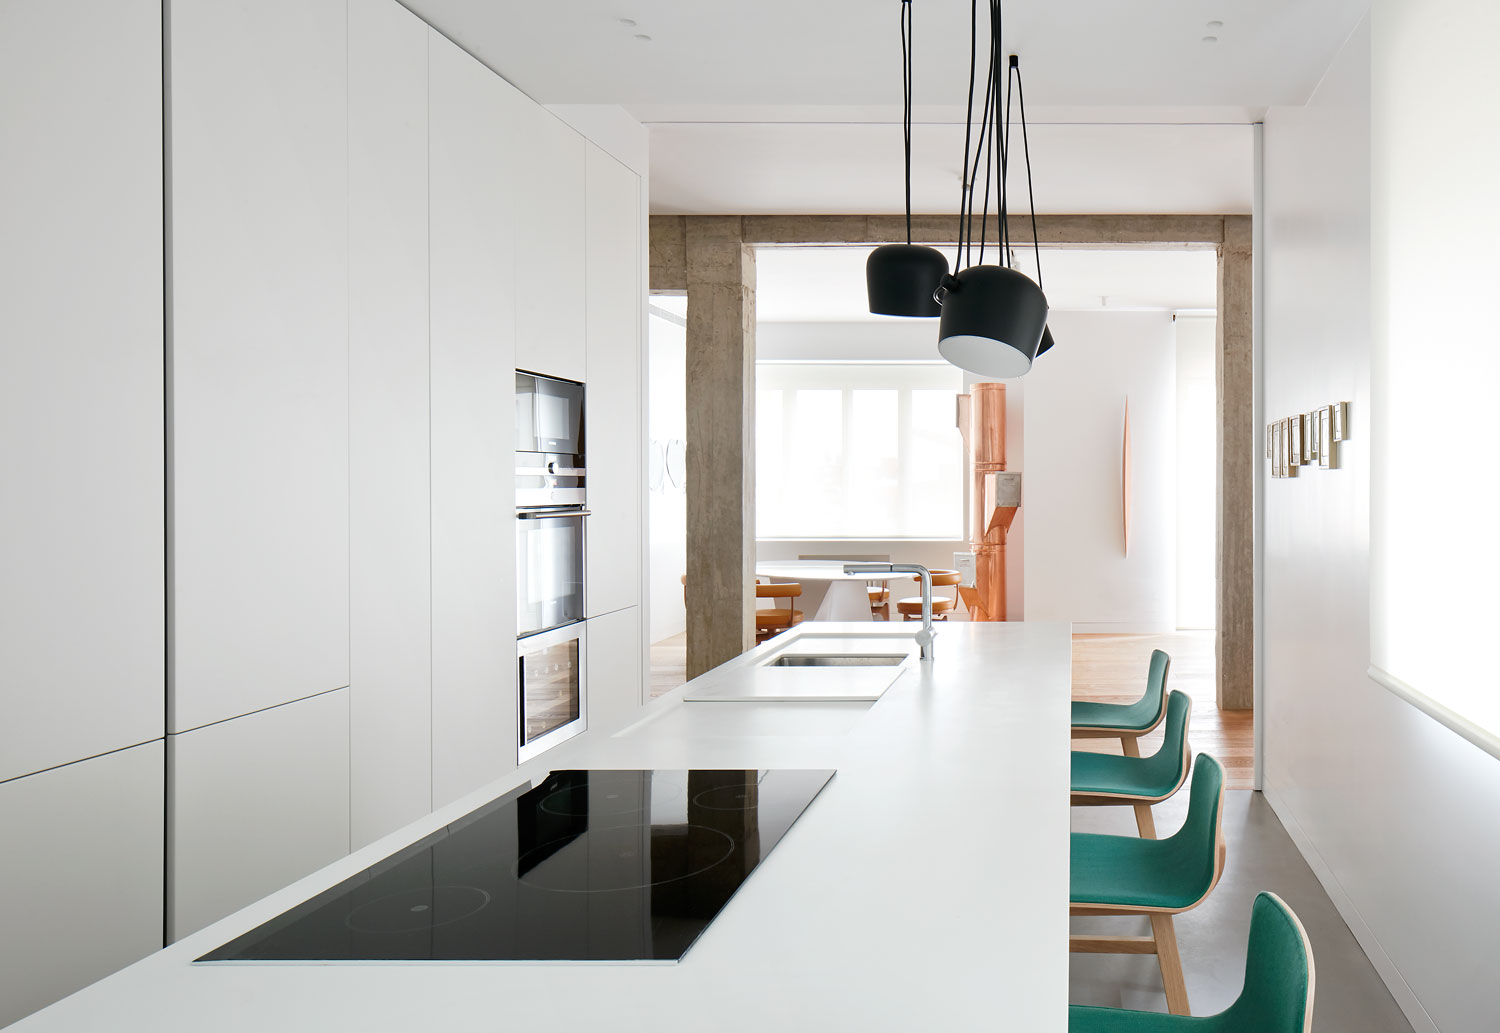 Modernist apartment renovation in madrid by lucas y for Interieur moderne